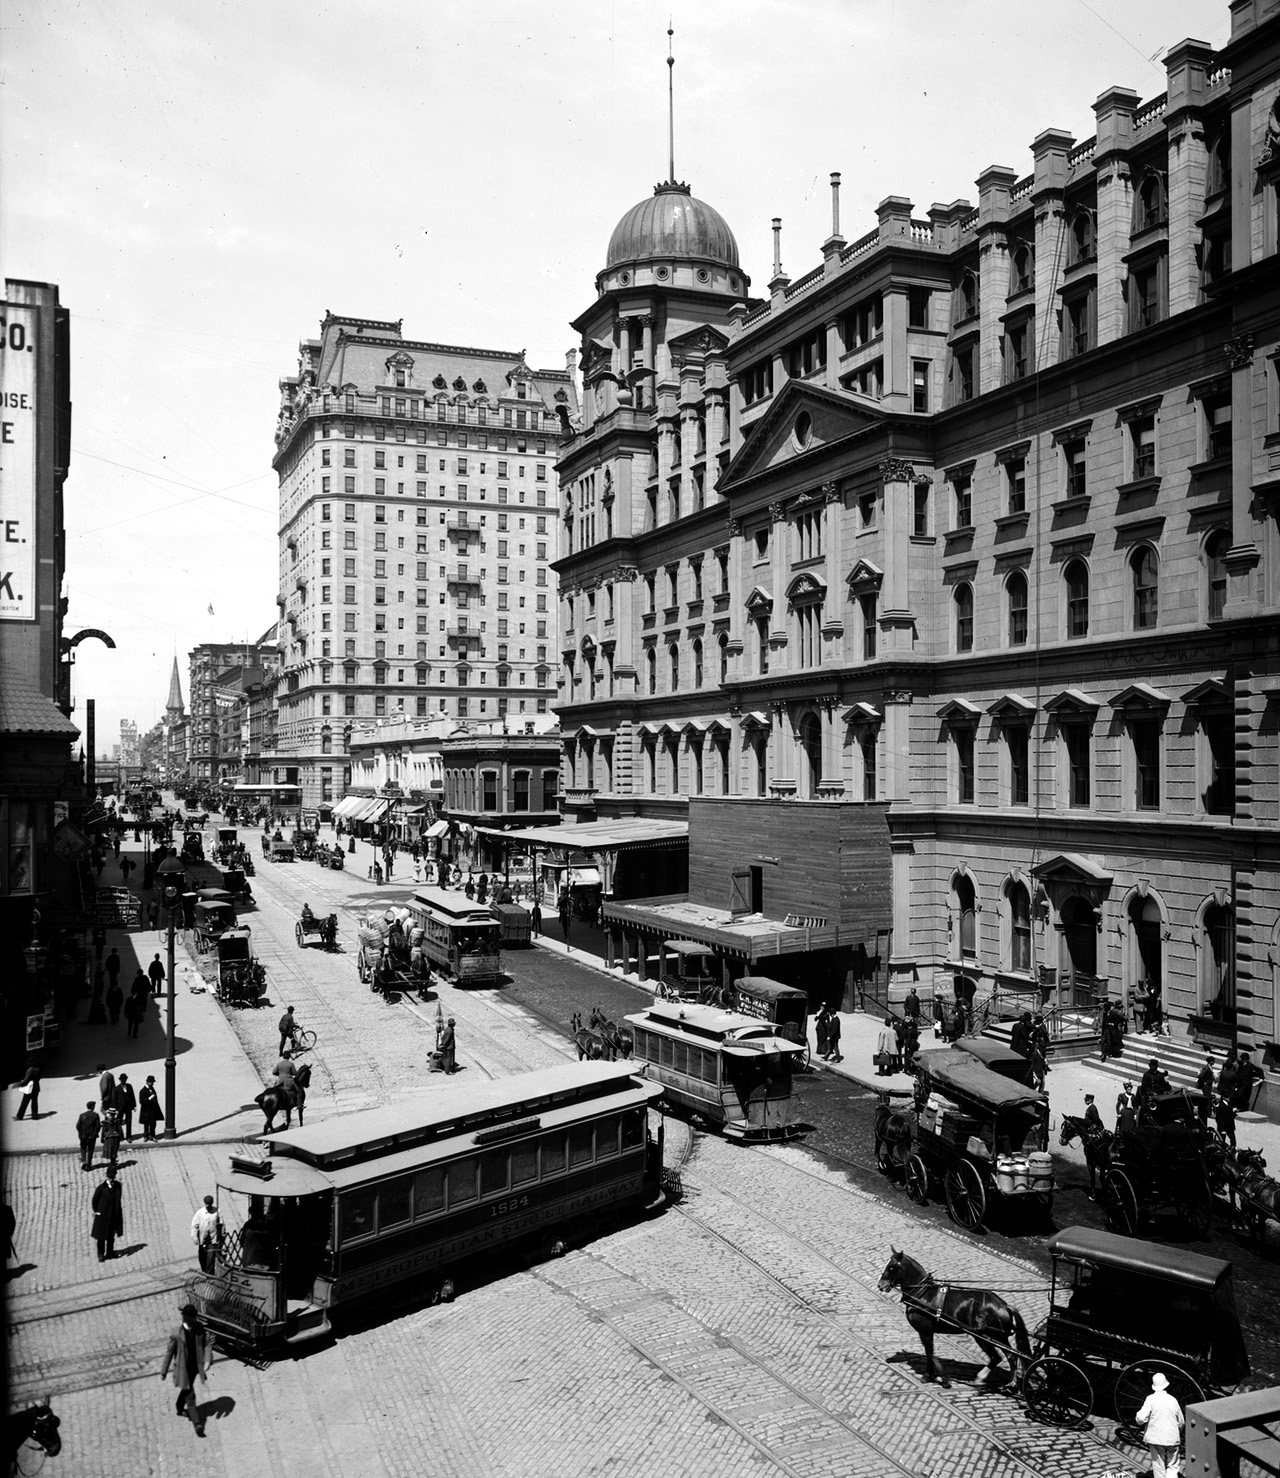 Grand Central Station and Hotel Manhattan, New York, 1900 (Library of Congress)